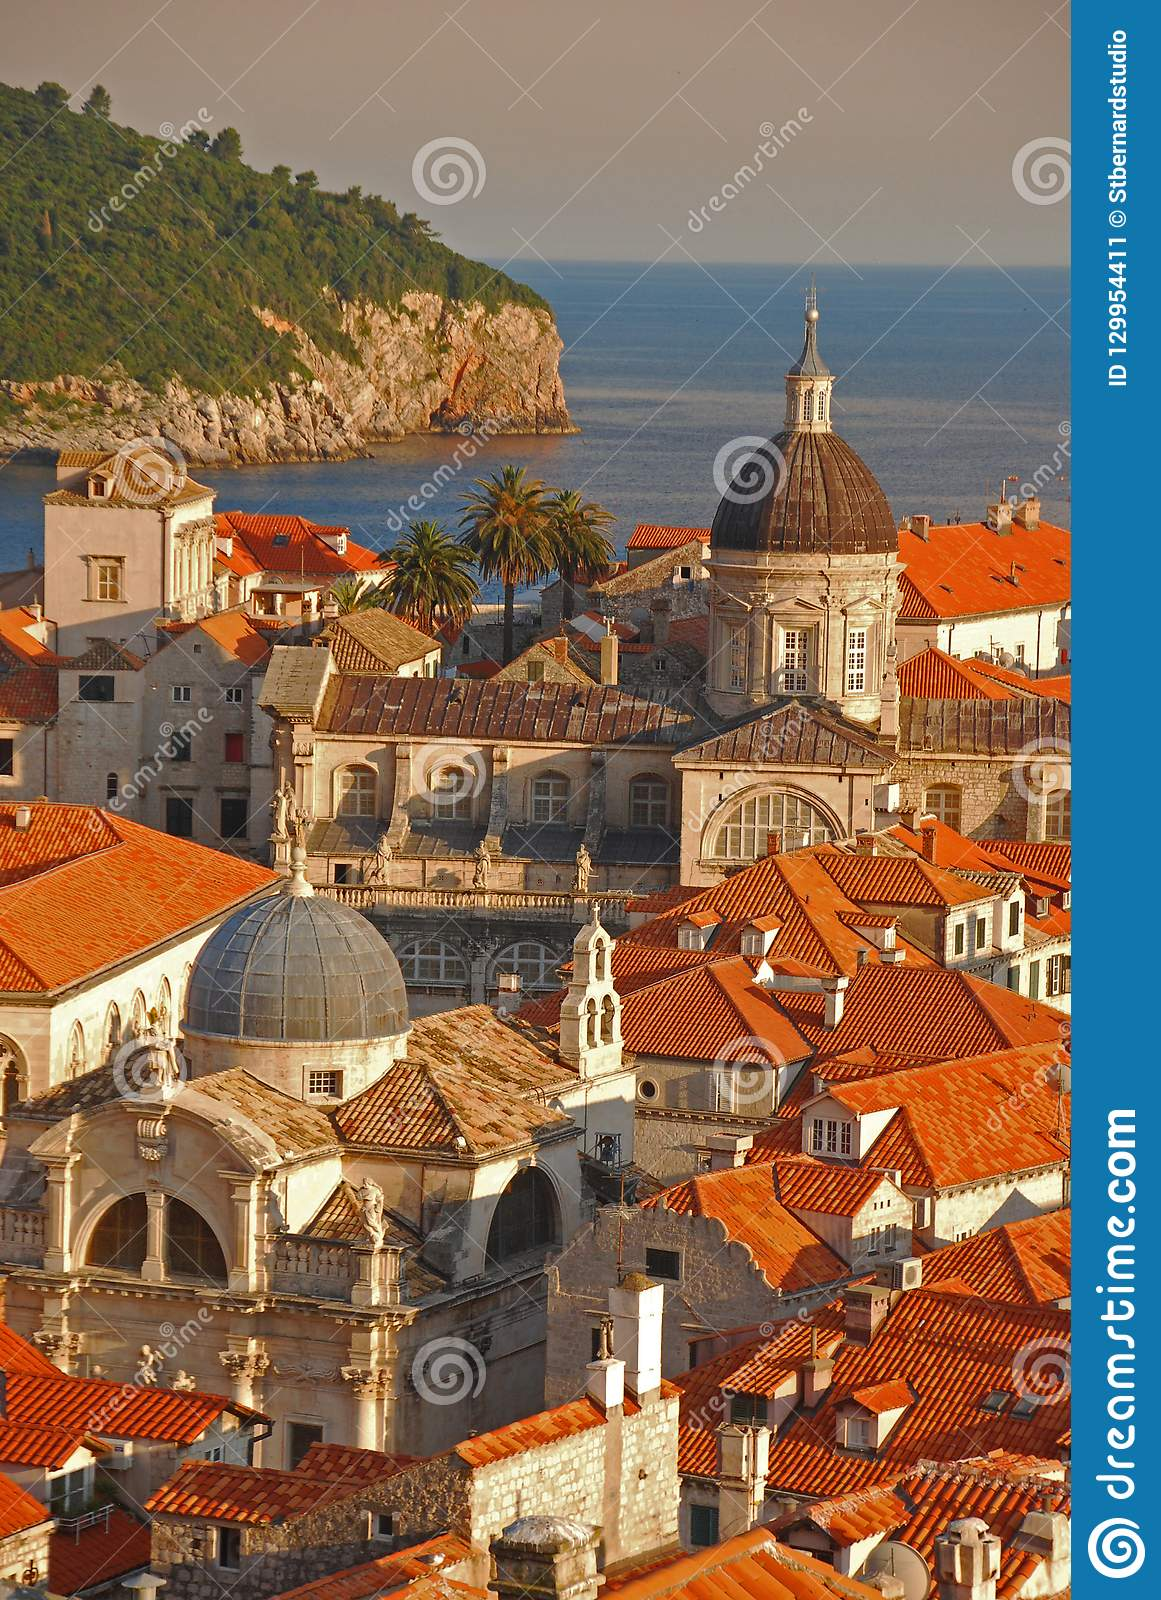 Upper View of Dubrovnik Old Town with Adriatic Sea in the background